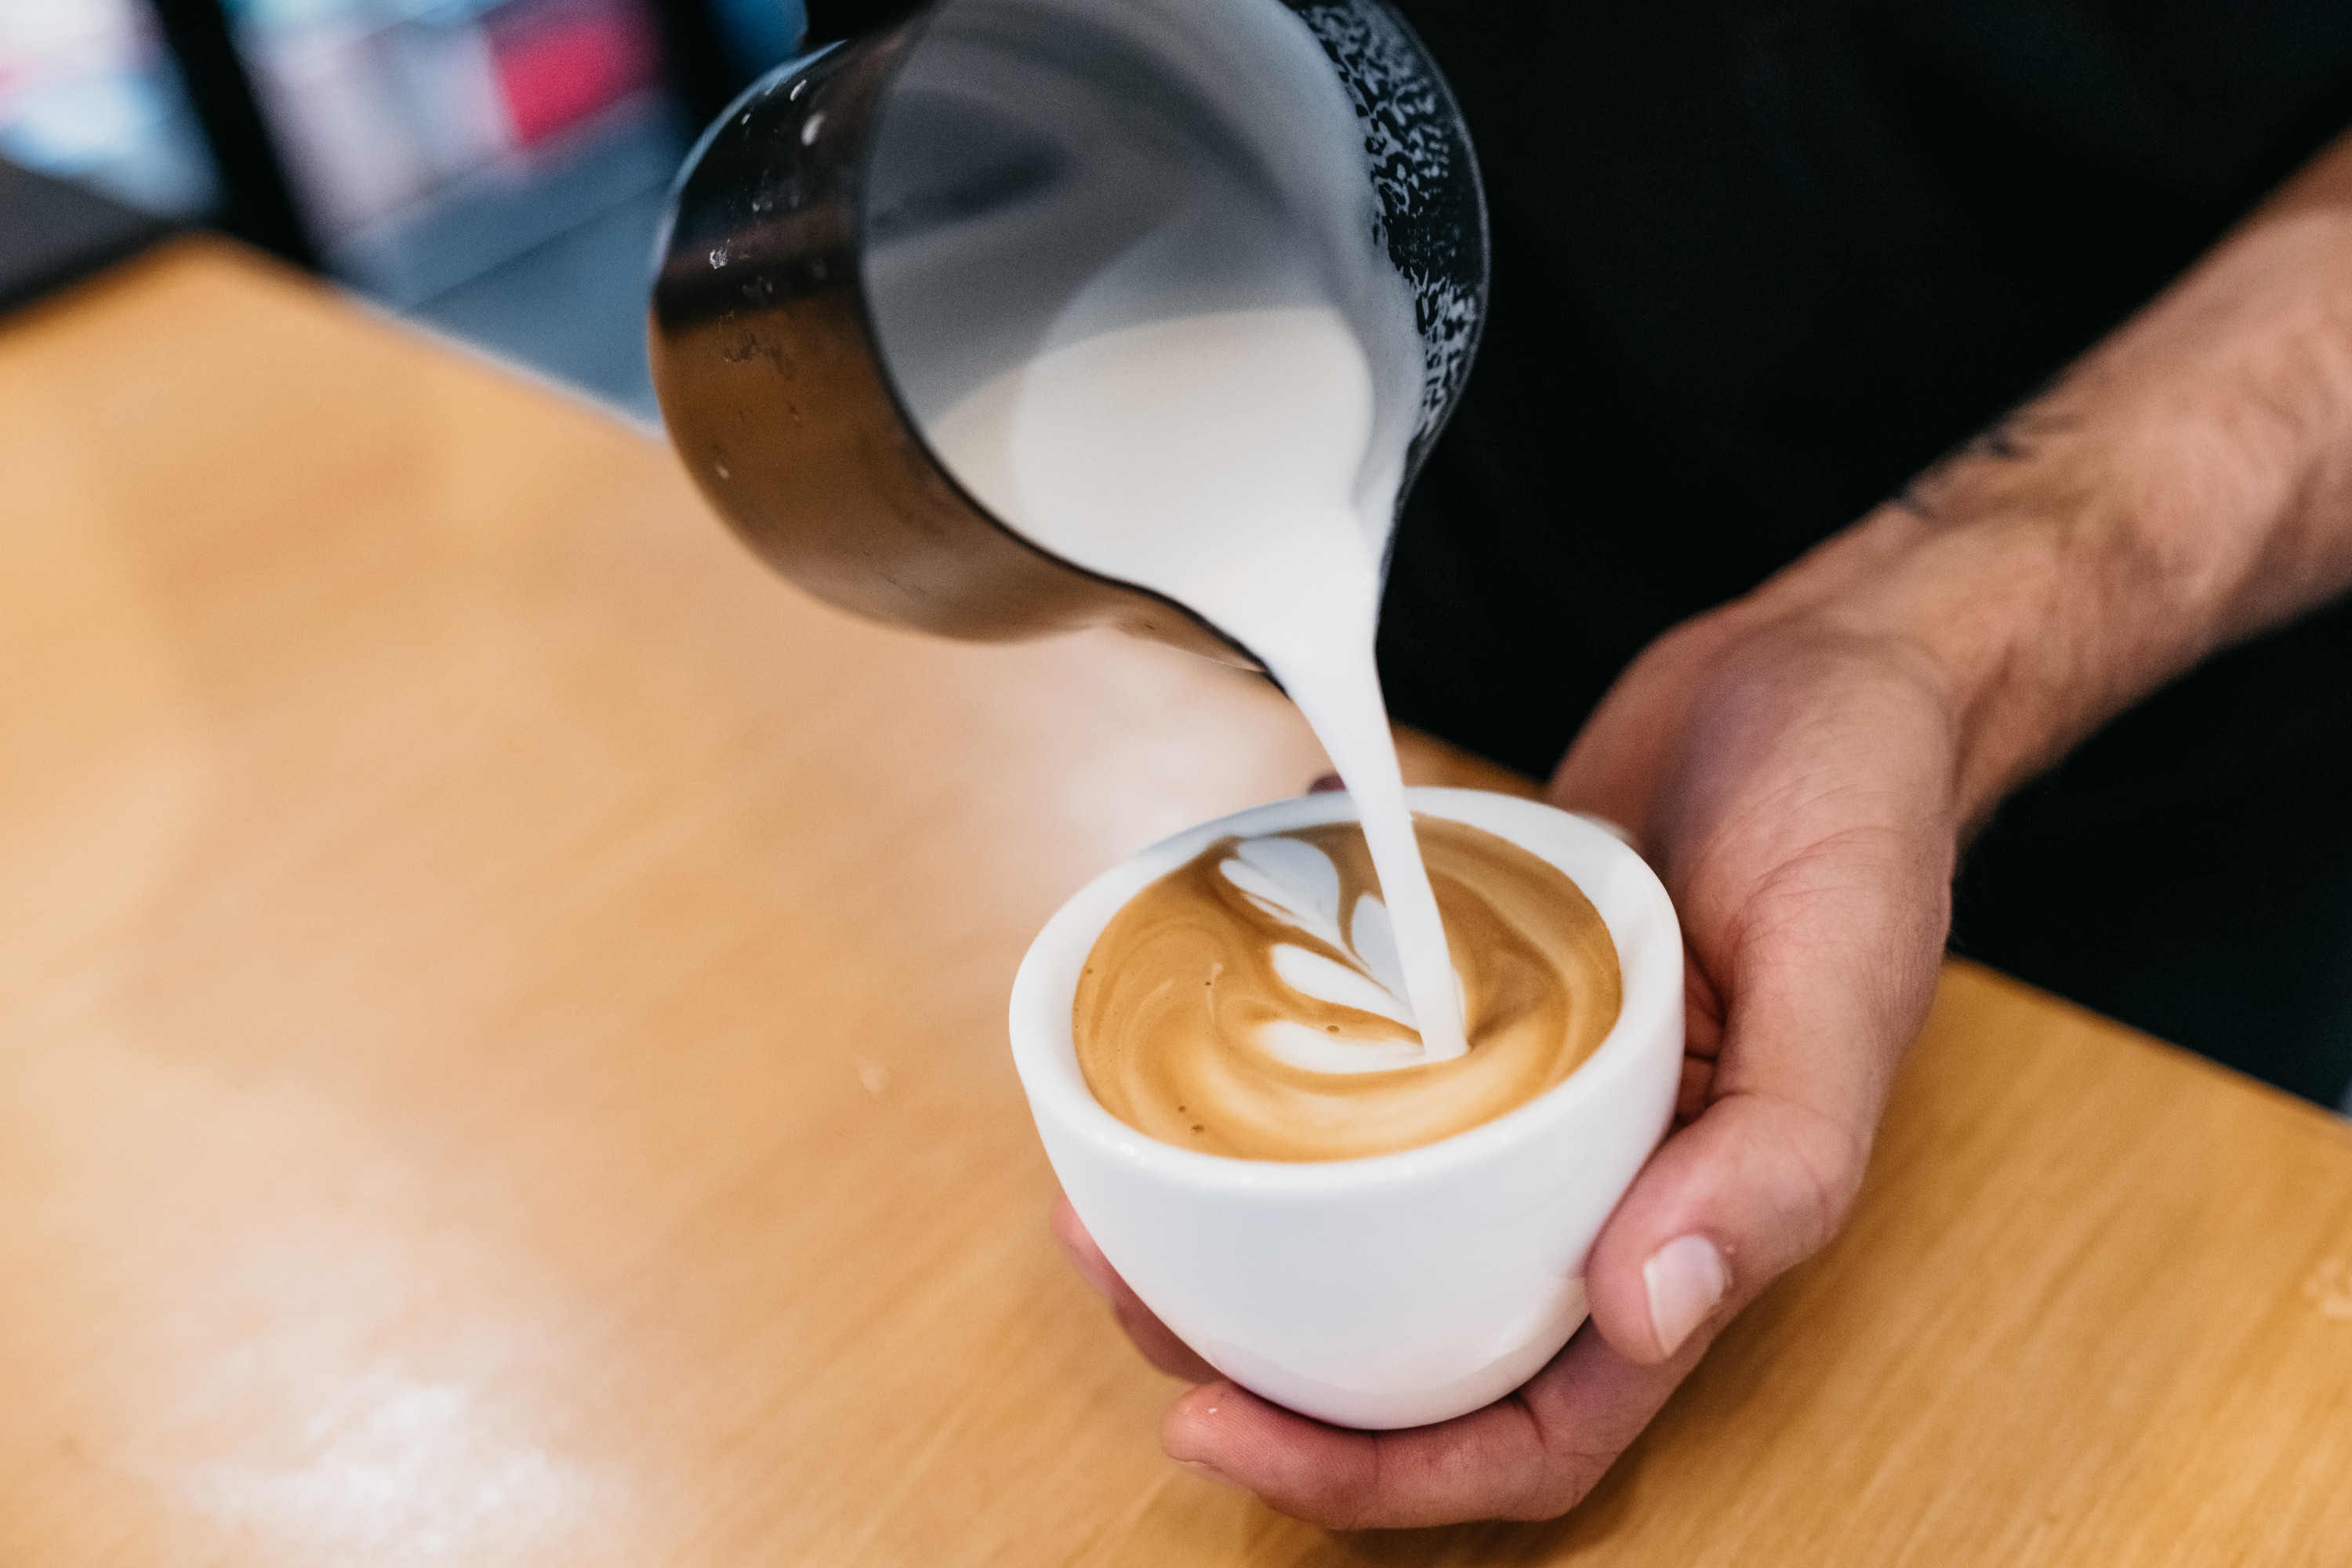 a close up shot of a person pouring coffee in a cup